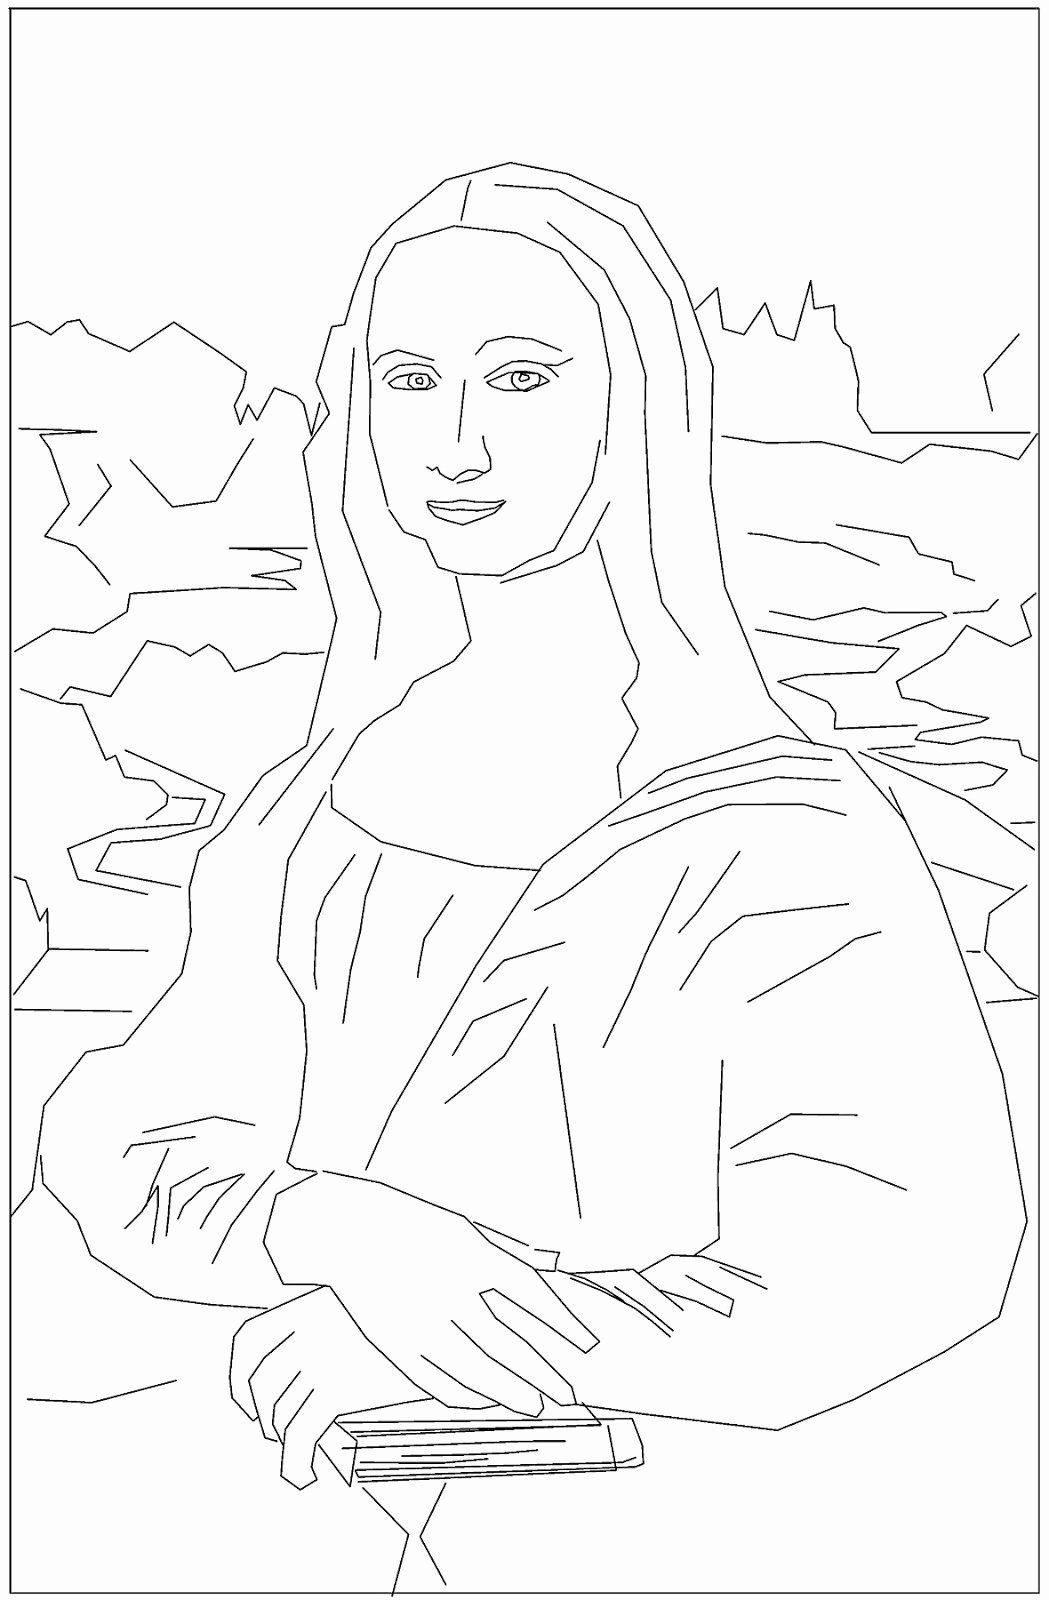 Mona Lisa Coloring Page Lovely Mona Lisa In